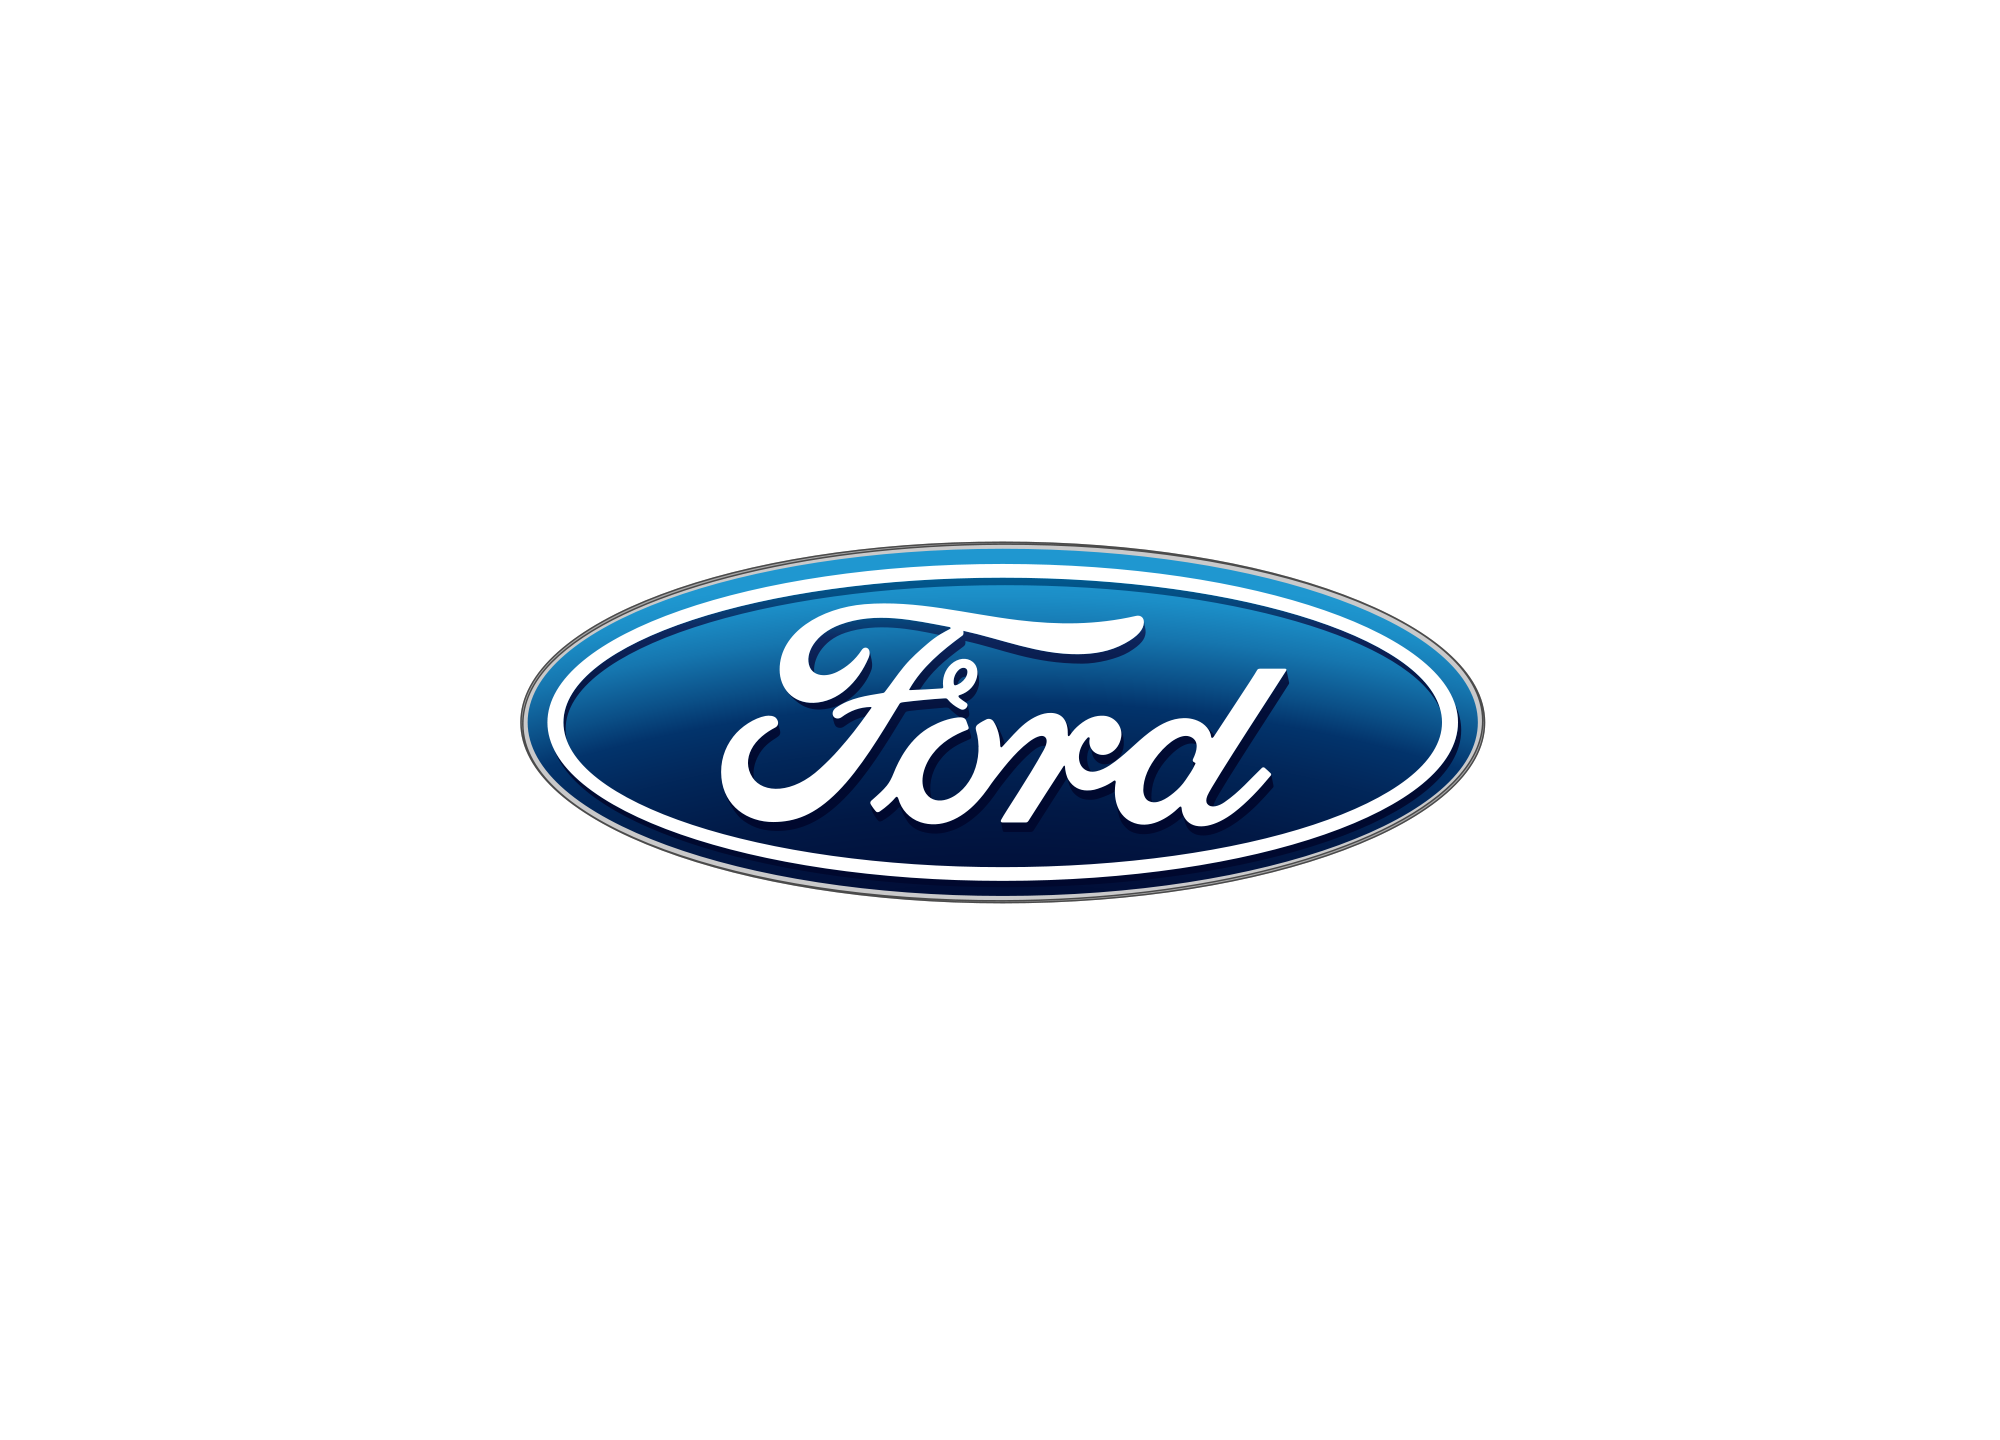 ford-logo-png-1.png